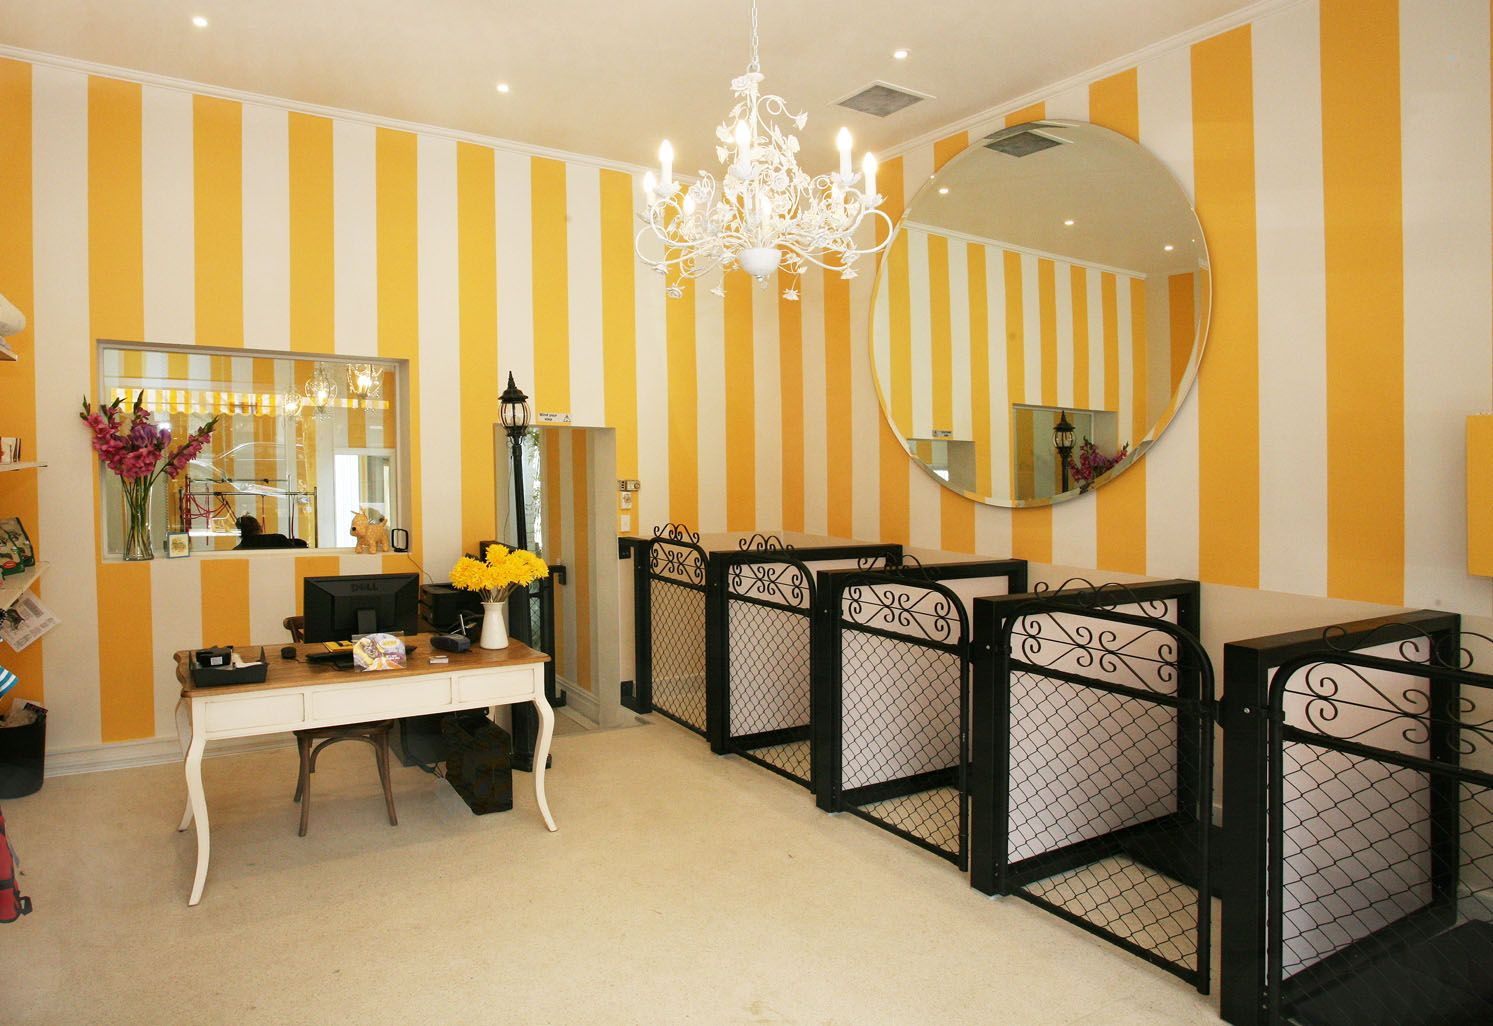 Pin By Scrappin Love Studio On Doggrooming Dog Grooming Salons Grooming Salon Dog Grooming Salon Decor